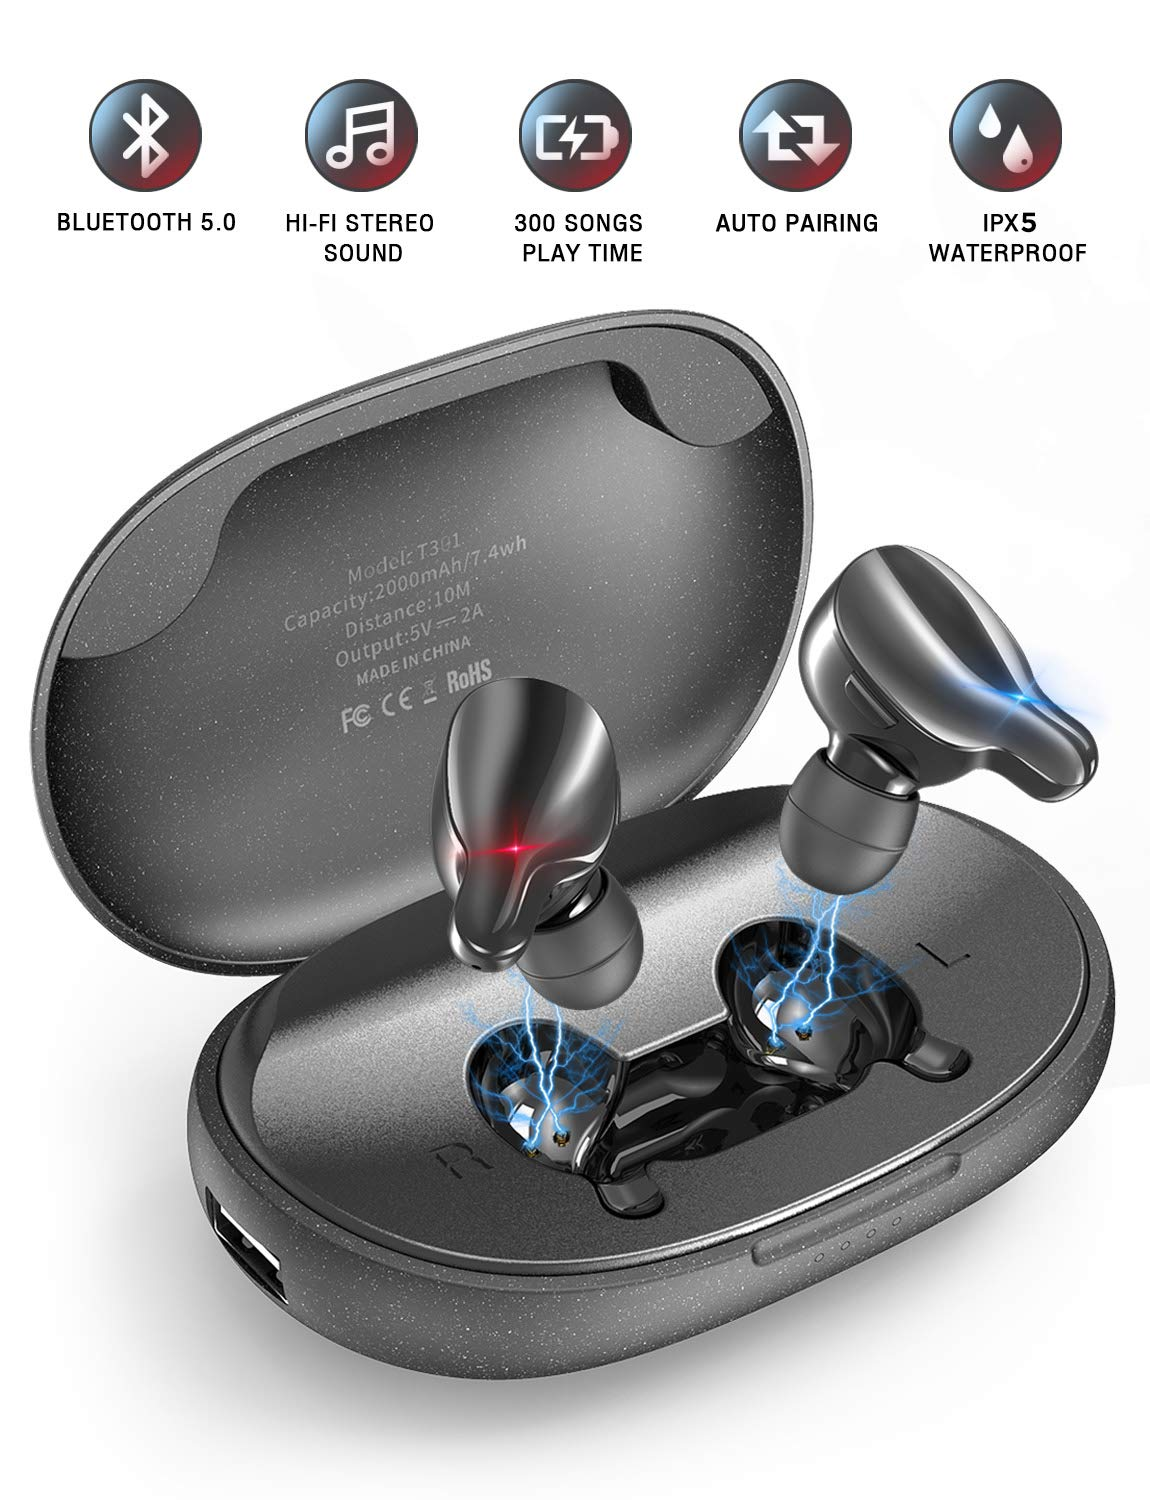 PeohZarr E-Pro Bluetooth Earbuds Wireless Earbuds with Deep Bass & 44 Hrs Playtime, Bluetooth 5.0 Wireless Headphones IPX5 Waterproof, 2000mAh Portable Charging Case